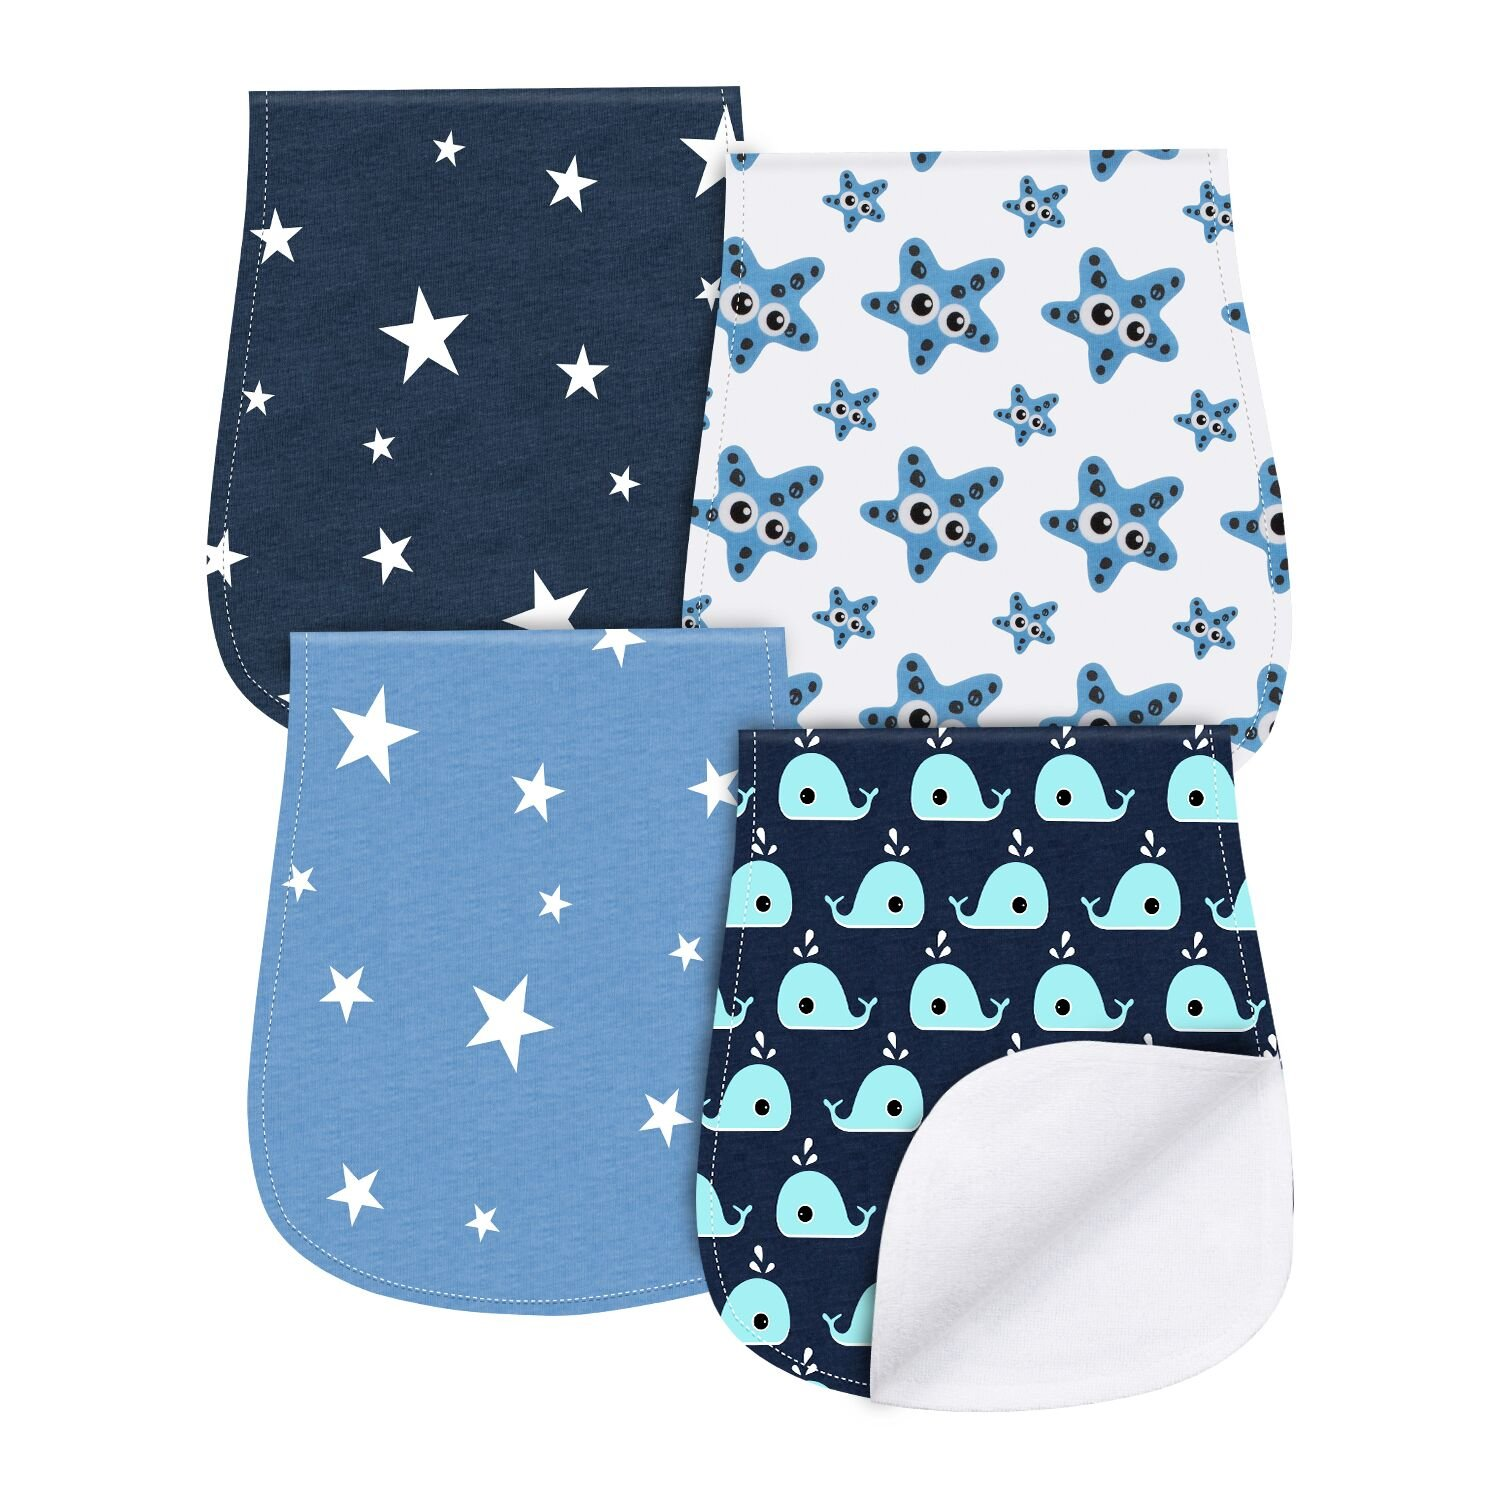 0e0840860ae08 Baby Burp Cloths 4 Pack Triple Layer Burping Rags Soft and Absorbent for  Boys Girls by YOOFOSS